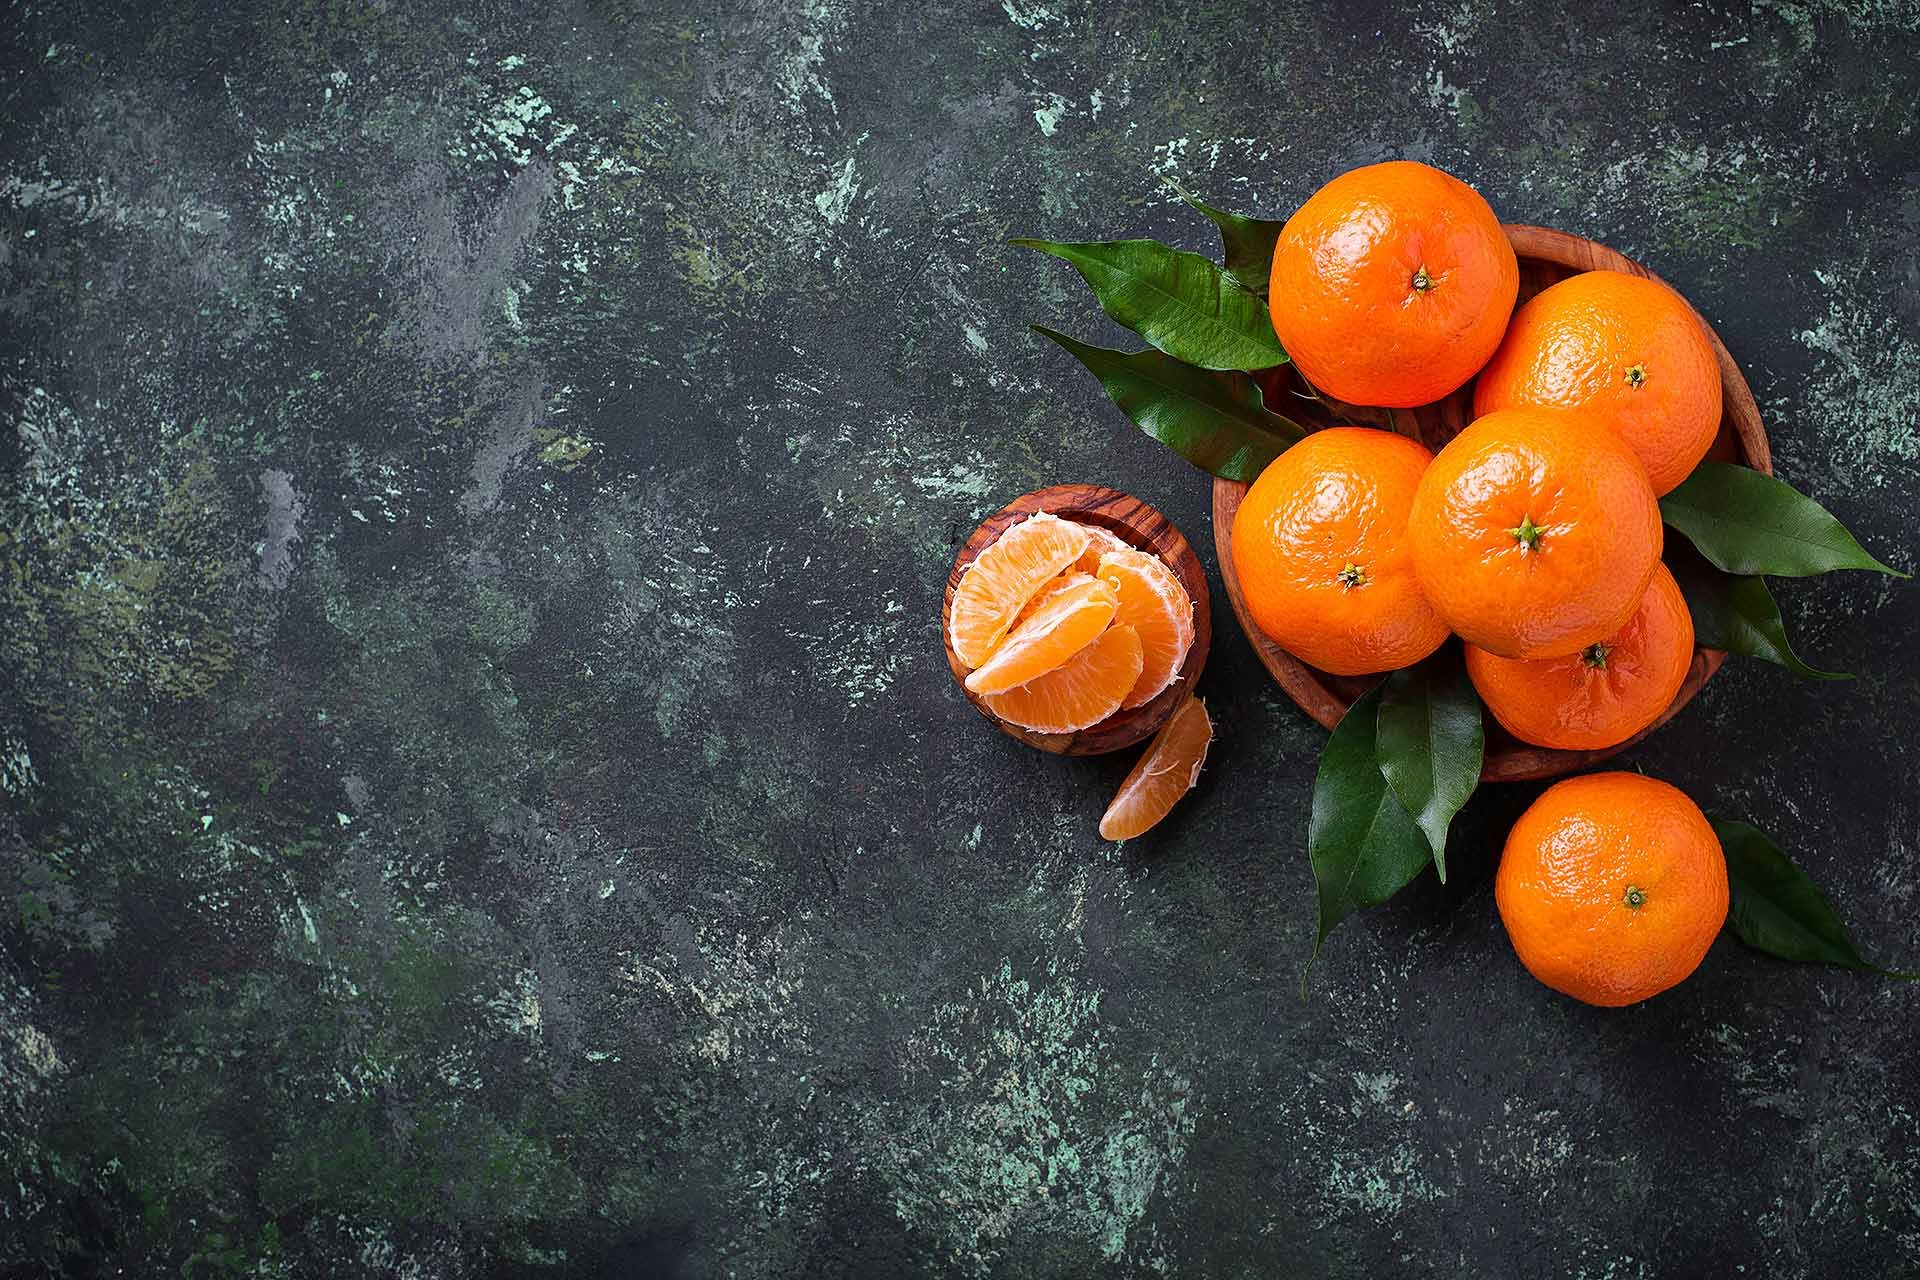 fresh-ripe-tangerines-with-leaves-FMD3A2K